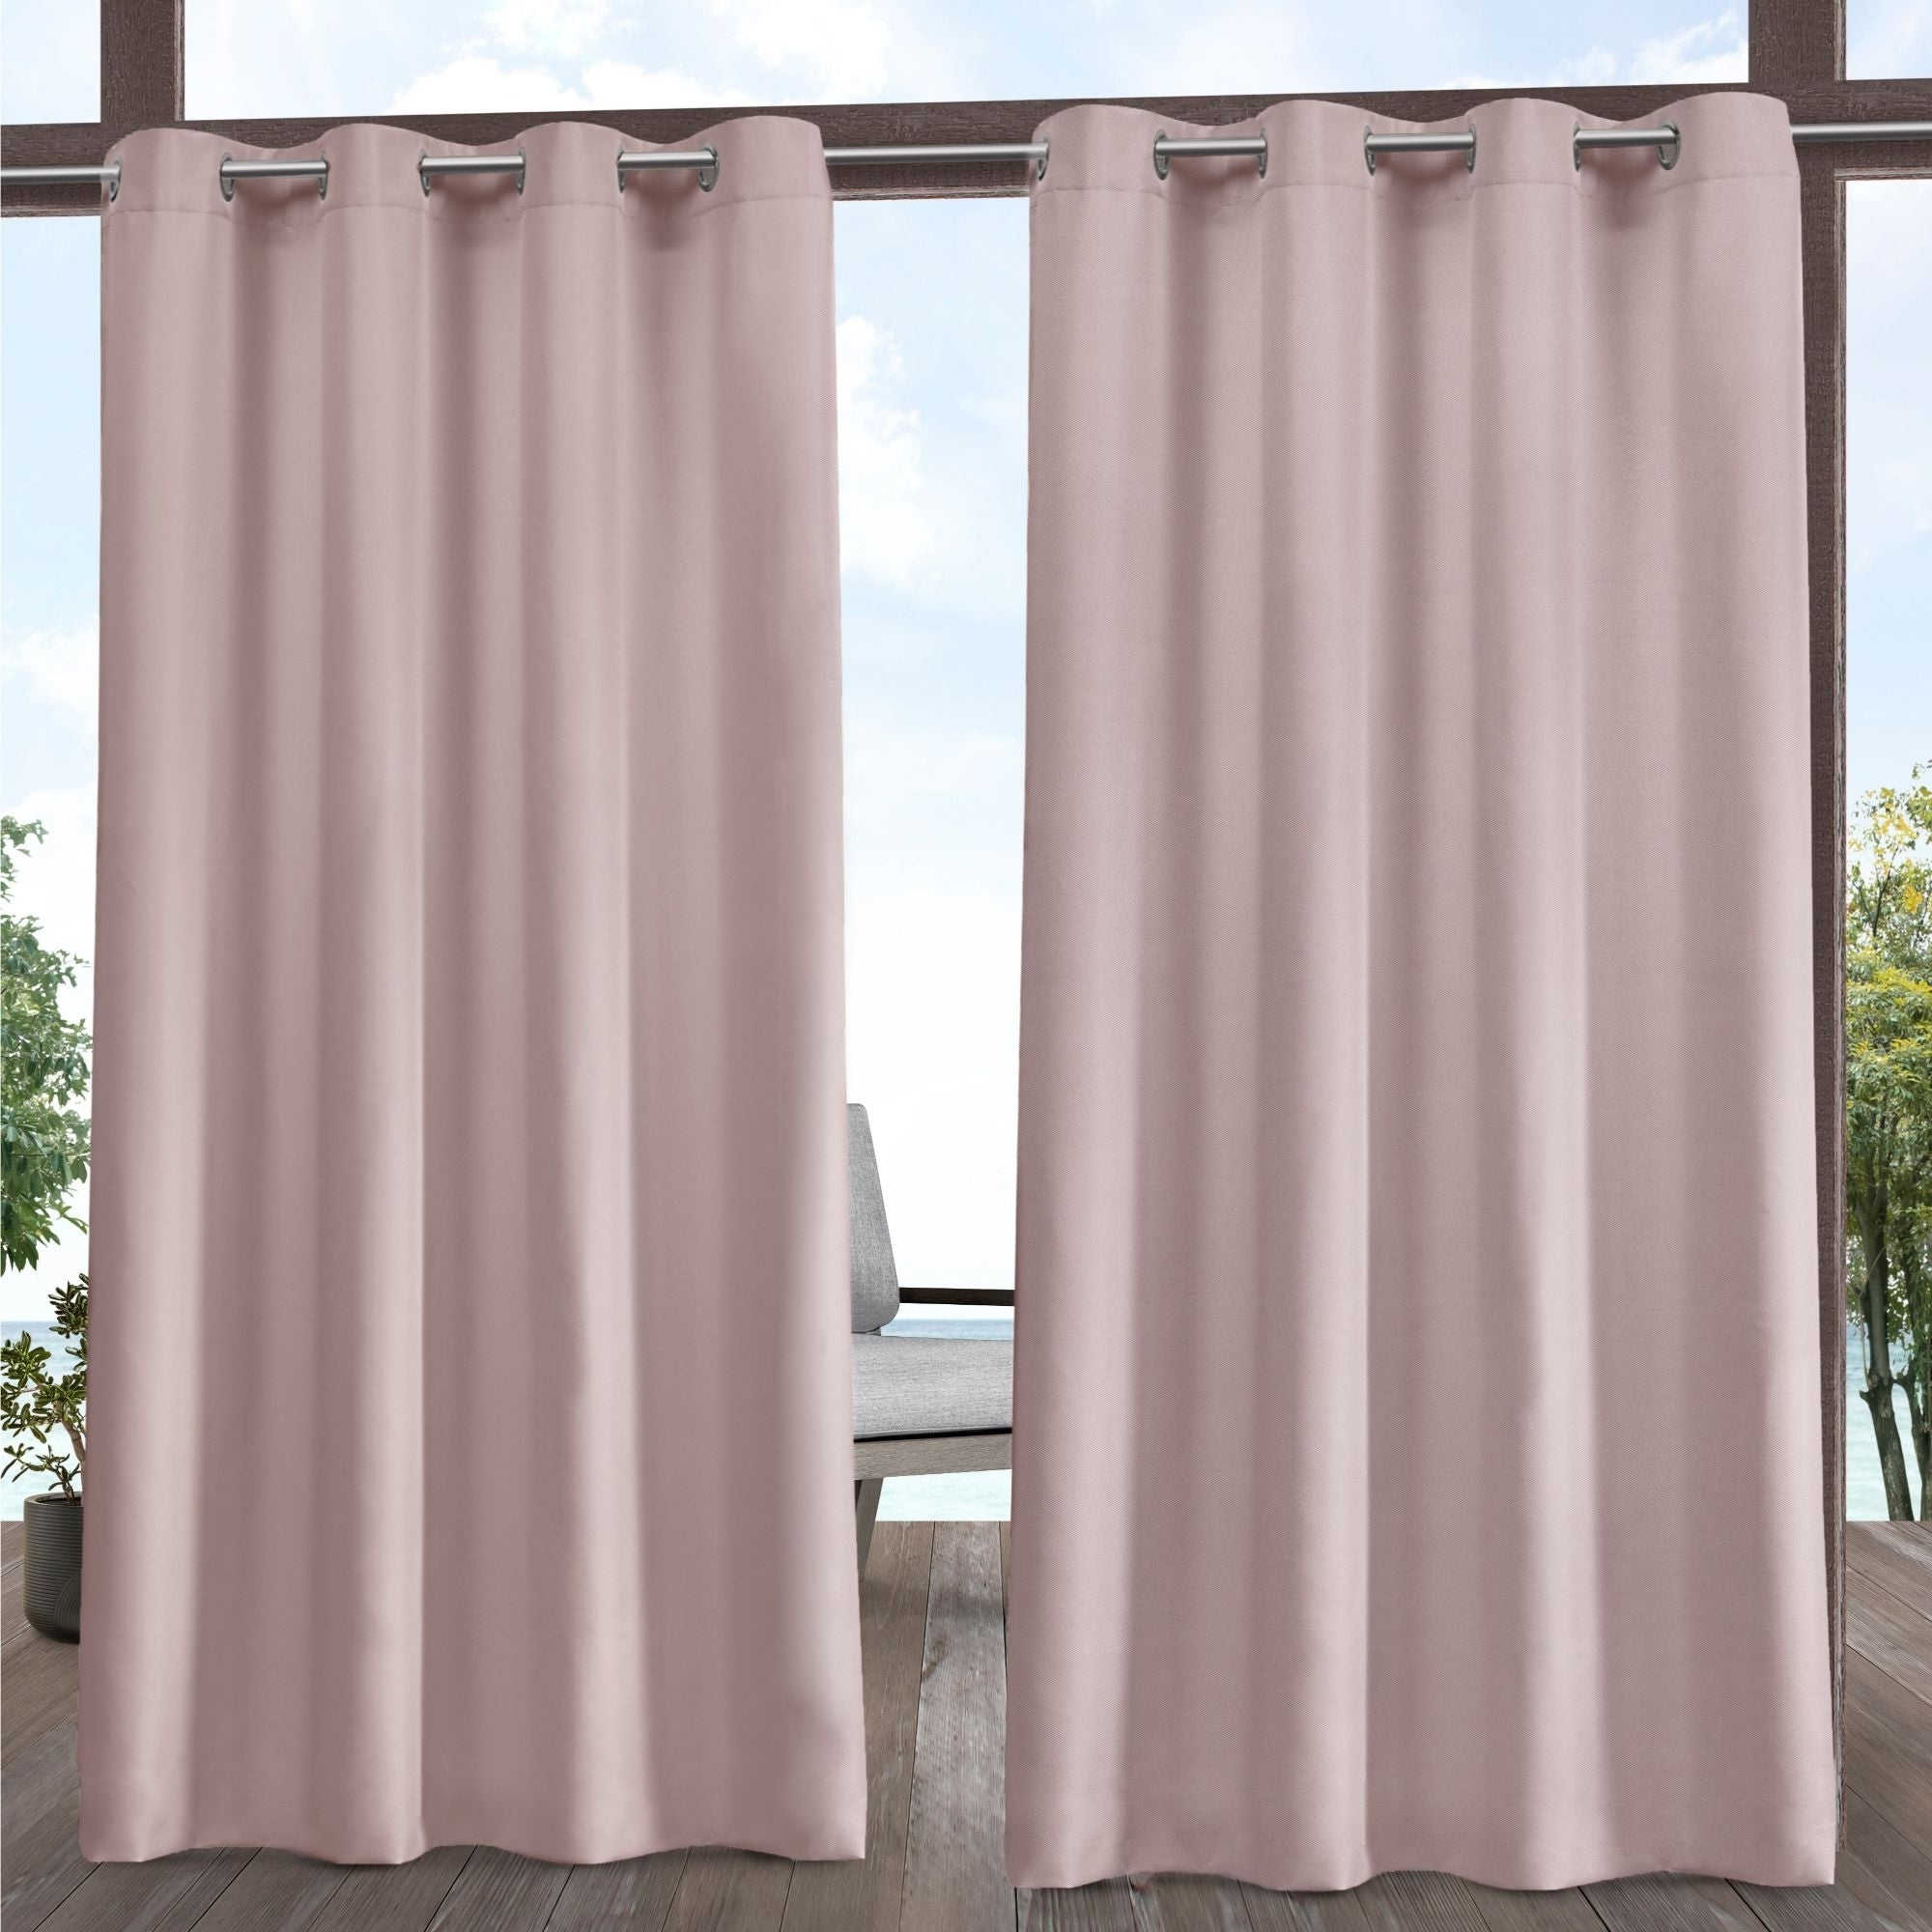 Ati Home Indoor/outdoor Solid Cabana Grommet Top Curtain Panel Pair Within Most Current Solid Grommet Top Curtain Panel Pairs (View 19 of 20)